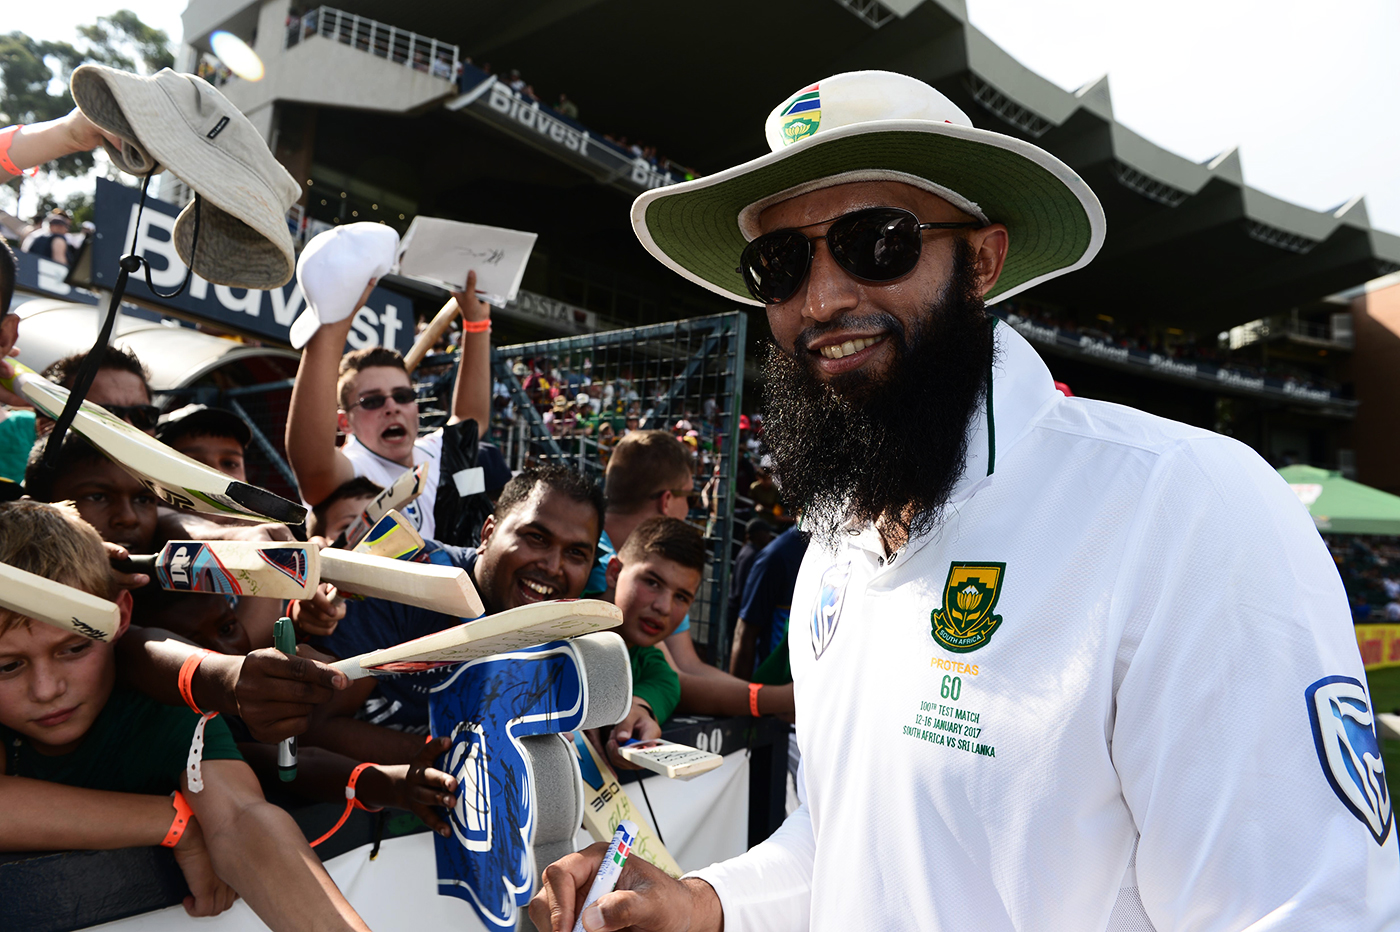 Hashim Amla signs autographs for fans